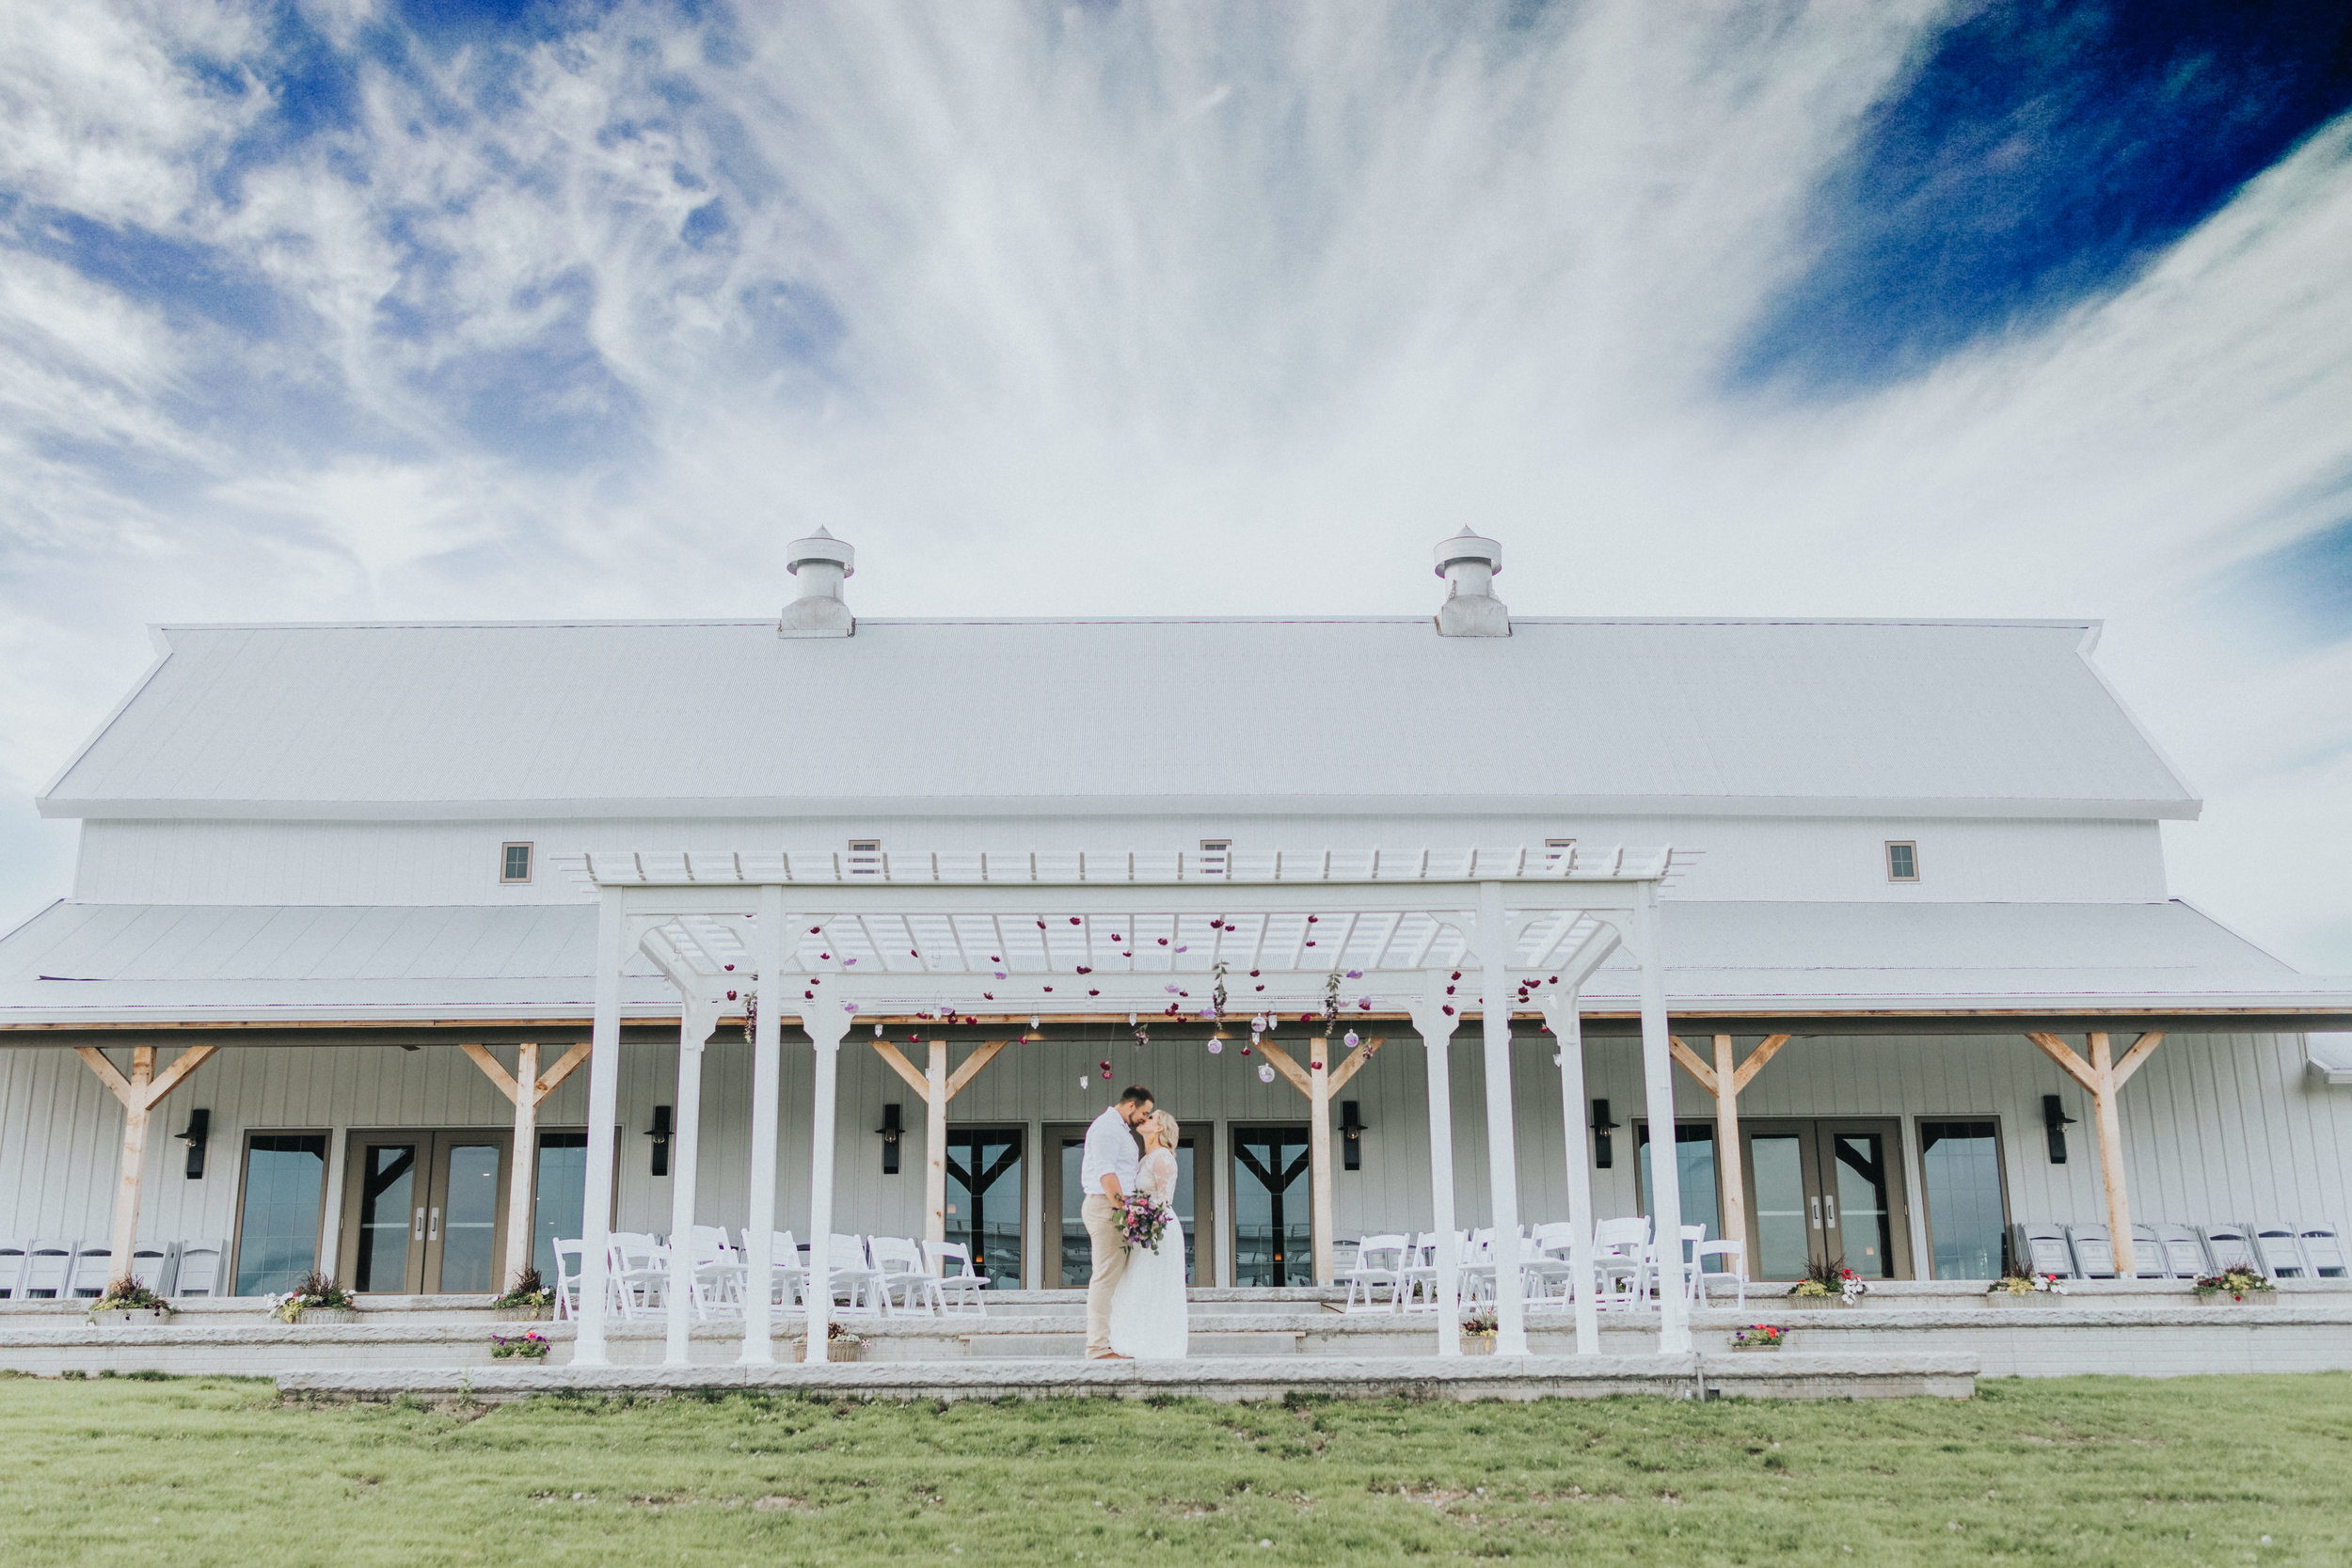 263 tiny-luxe-weddings-iowa-venue-photogeraphy-palace.jpg